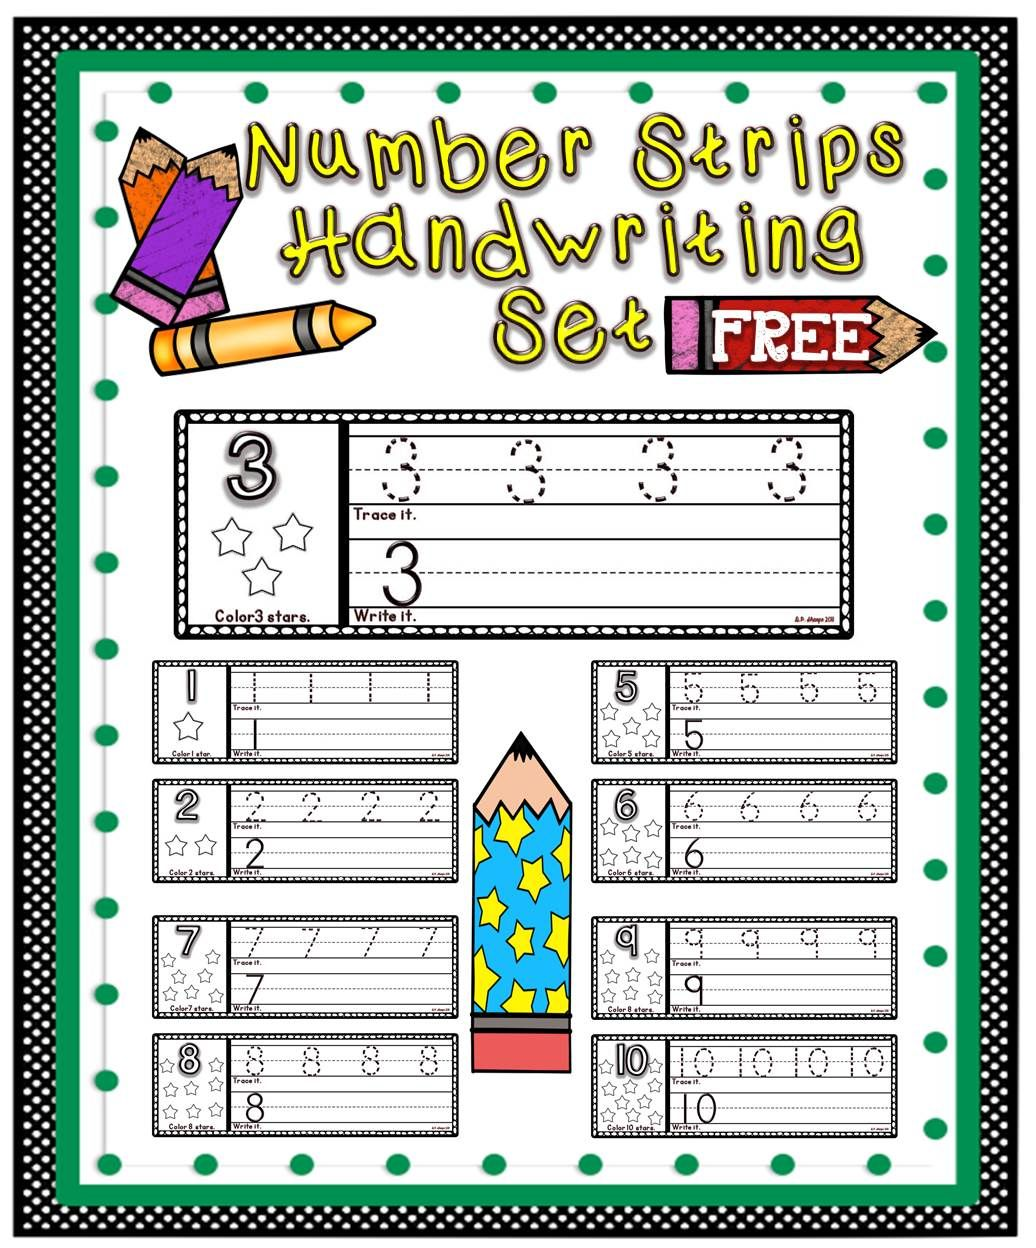 Number Strips Handwriting Set Free